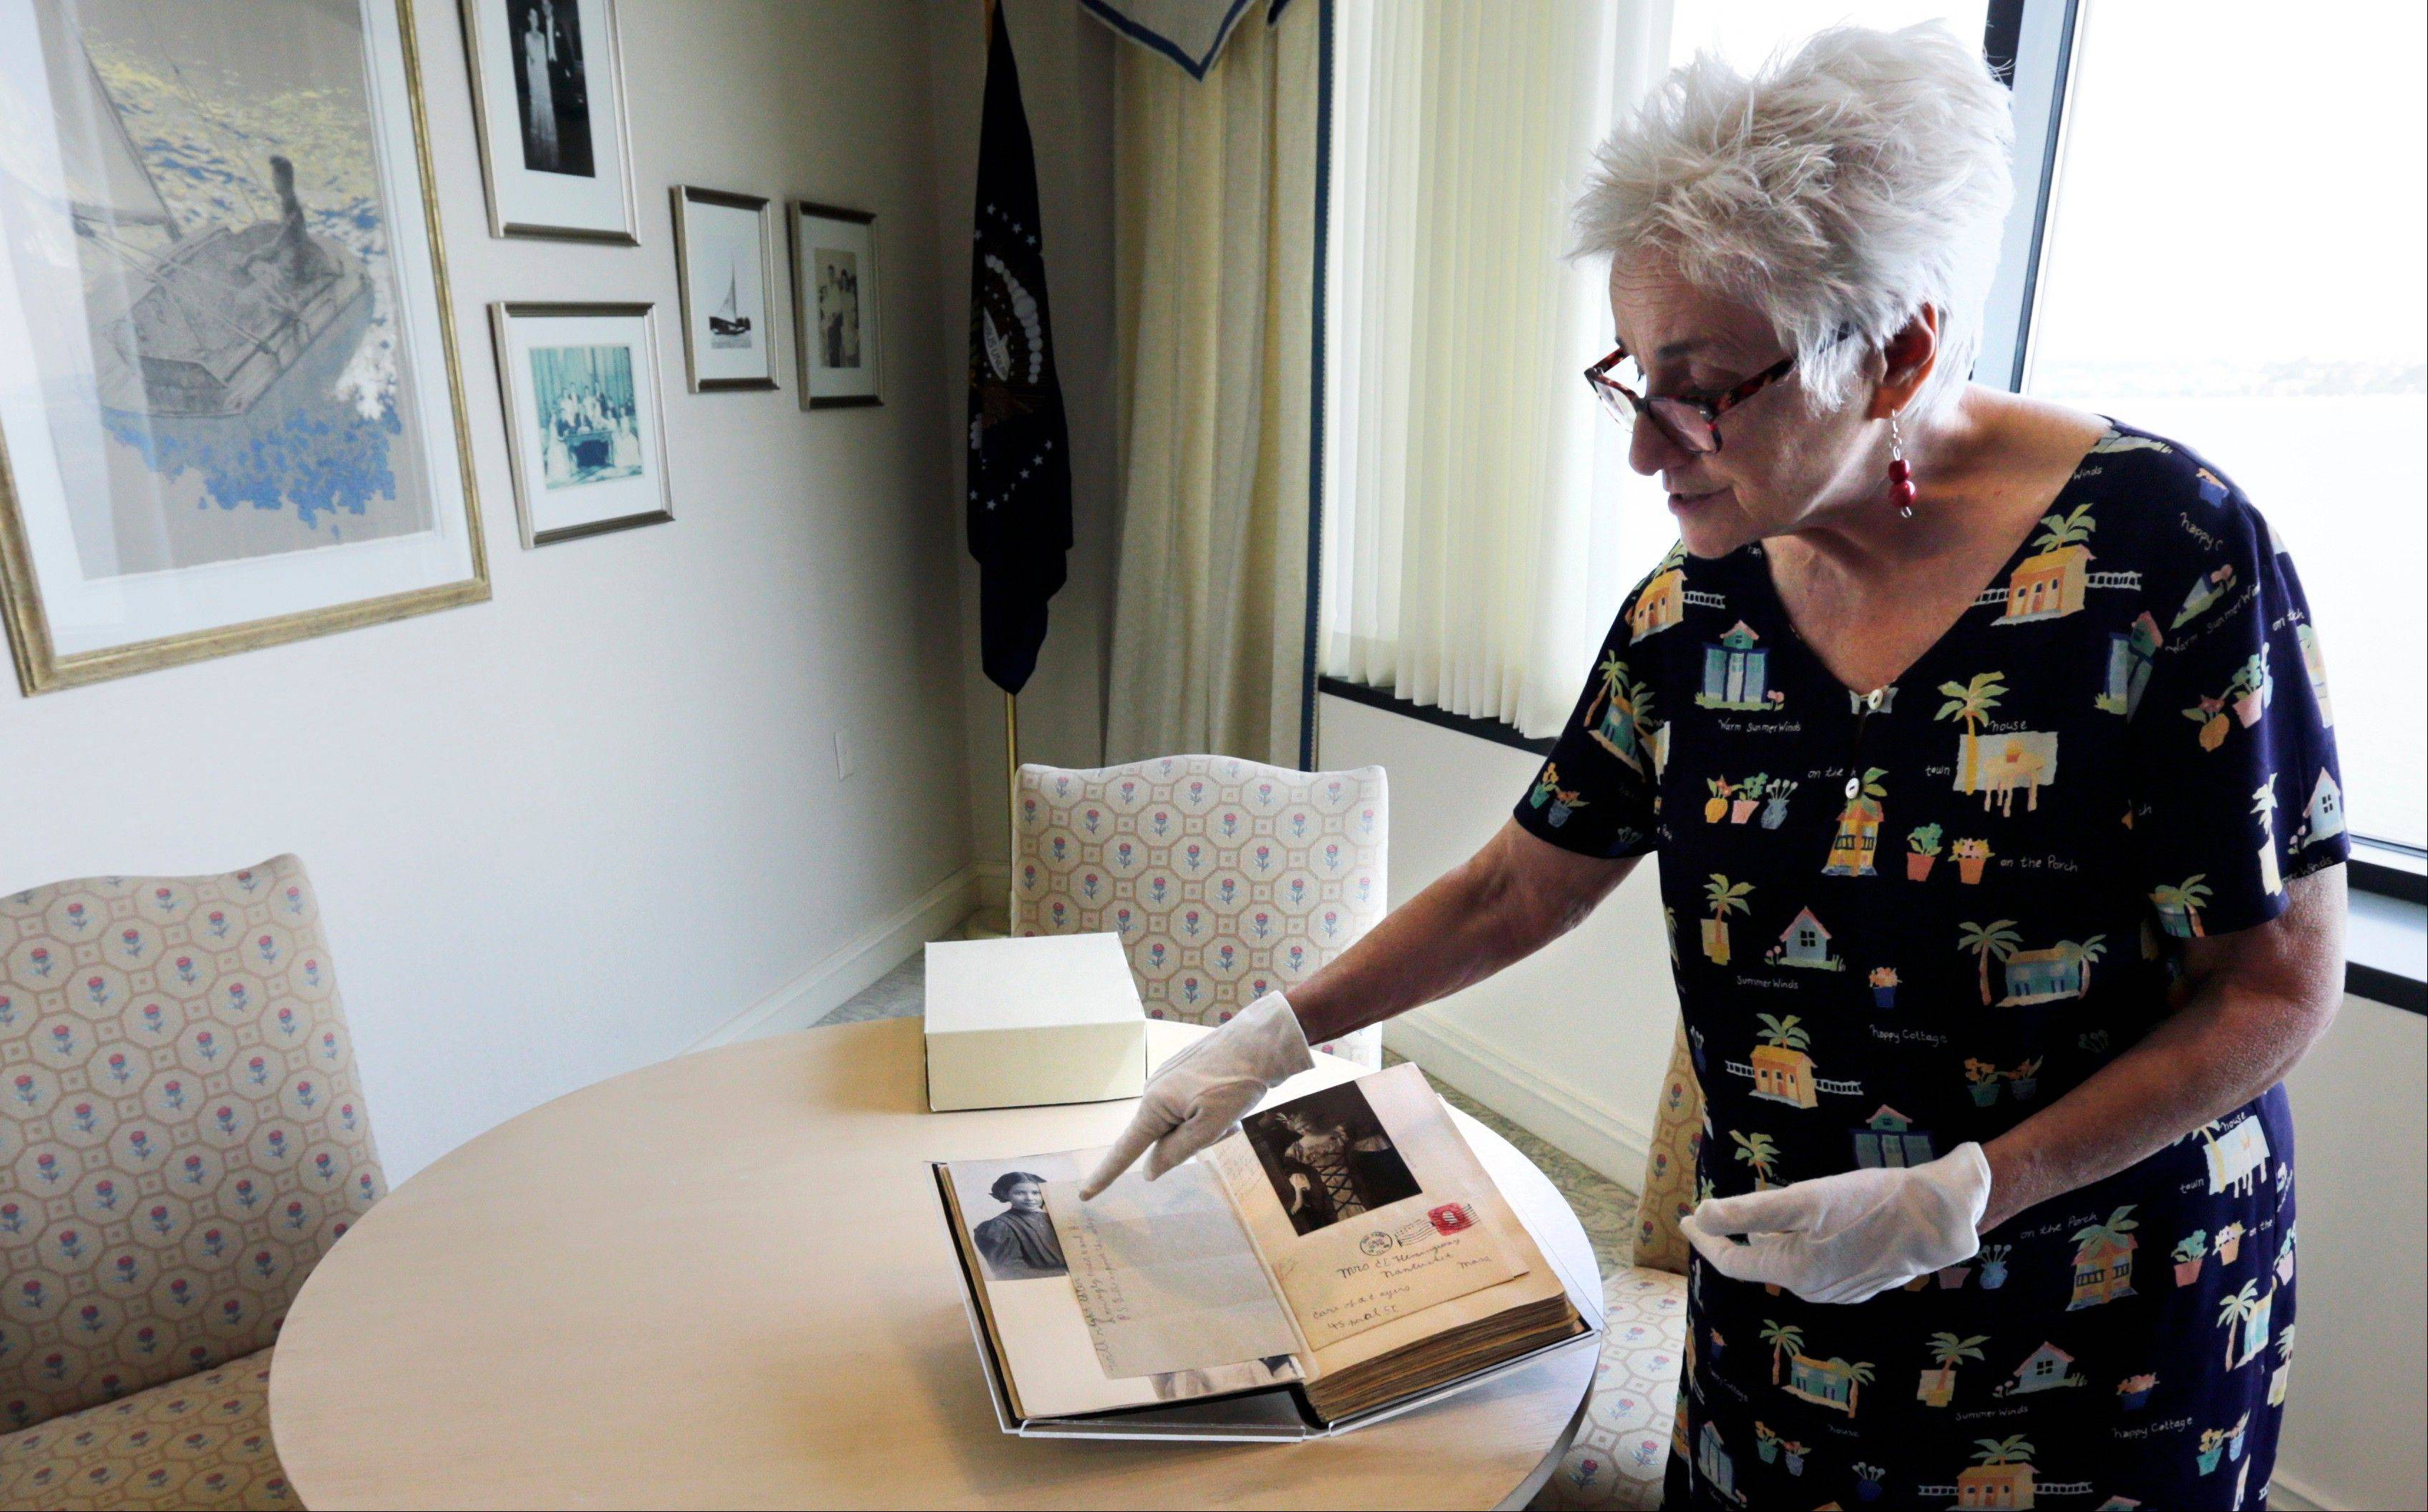 Susan Rynn, the Hemingway Collection curator, displays a scrapbook made by Ernest Hemingway's mother Grace Hall Hemingway, at the John F. Kennedy Presidential Library in Boston.